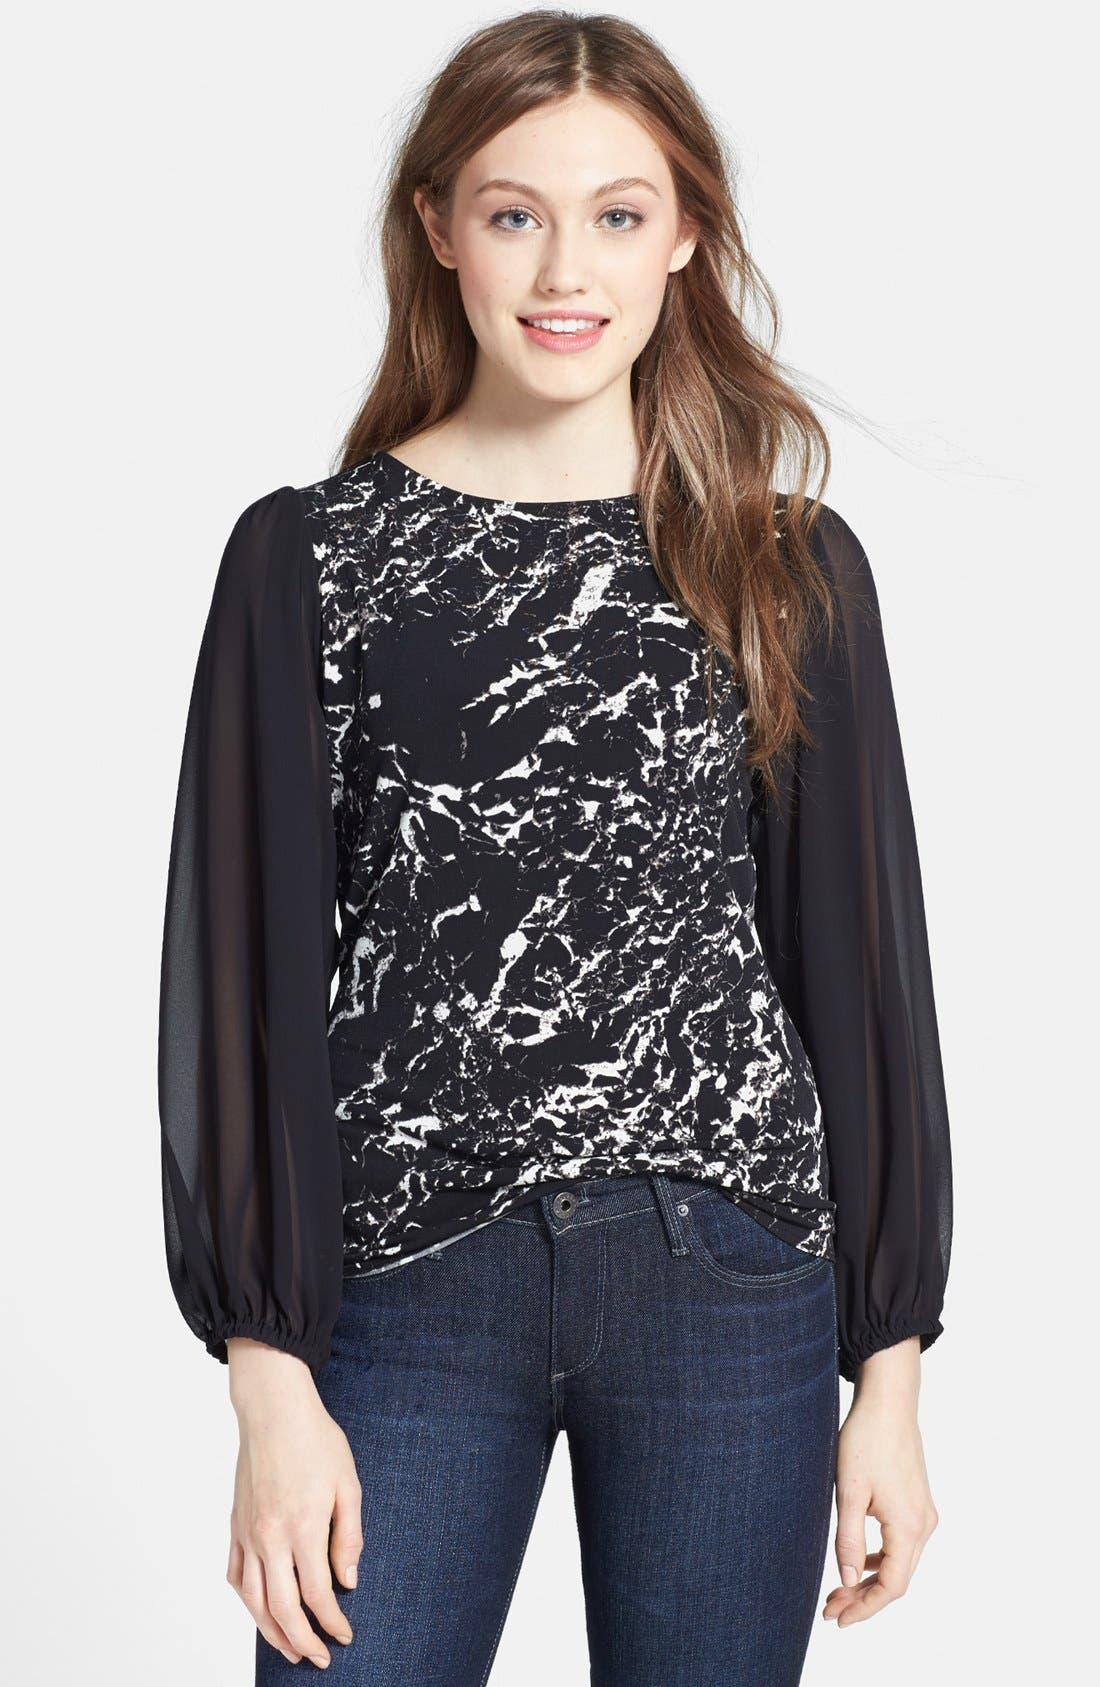 Main Image - Vince Camuto Marble Print Chiffon Sleeve Knit Top